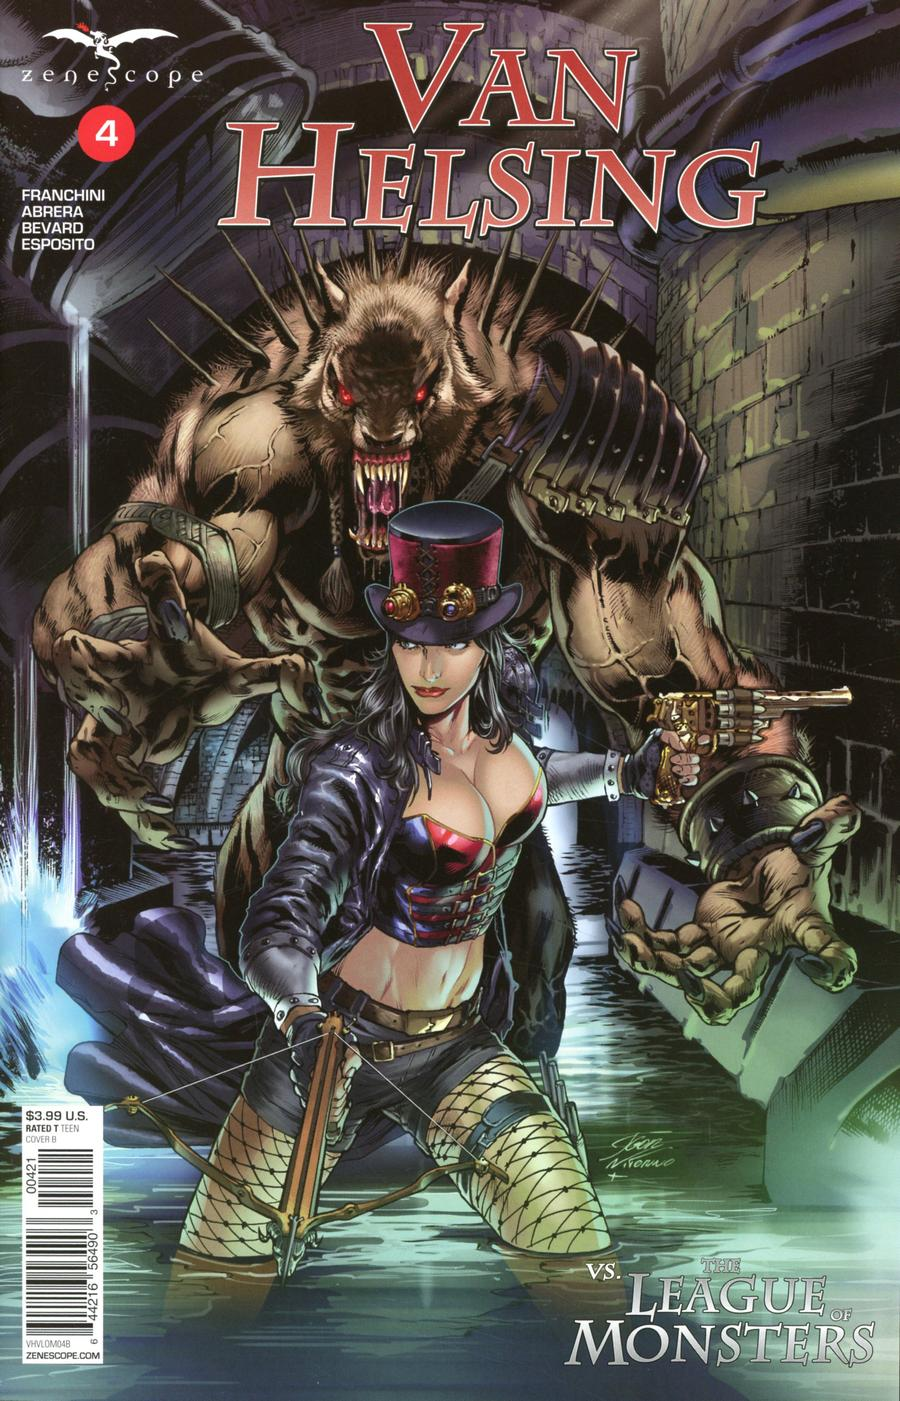 Grimm Fairy Tales Presents Van Helsing vs The League Of Monsters #4 Cover B Igor Vitorino